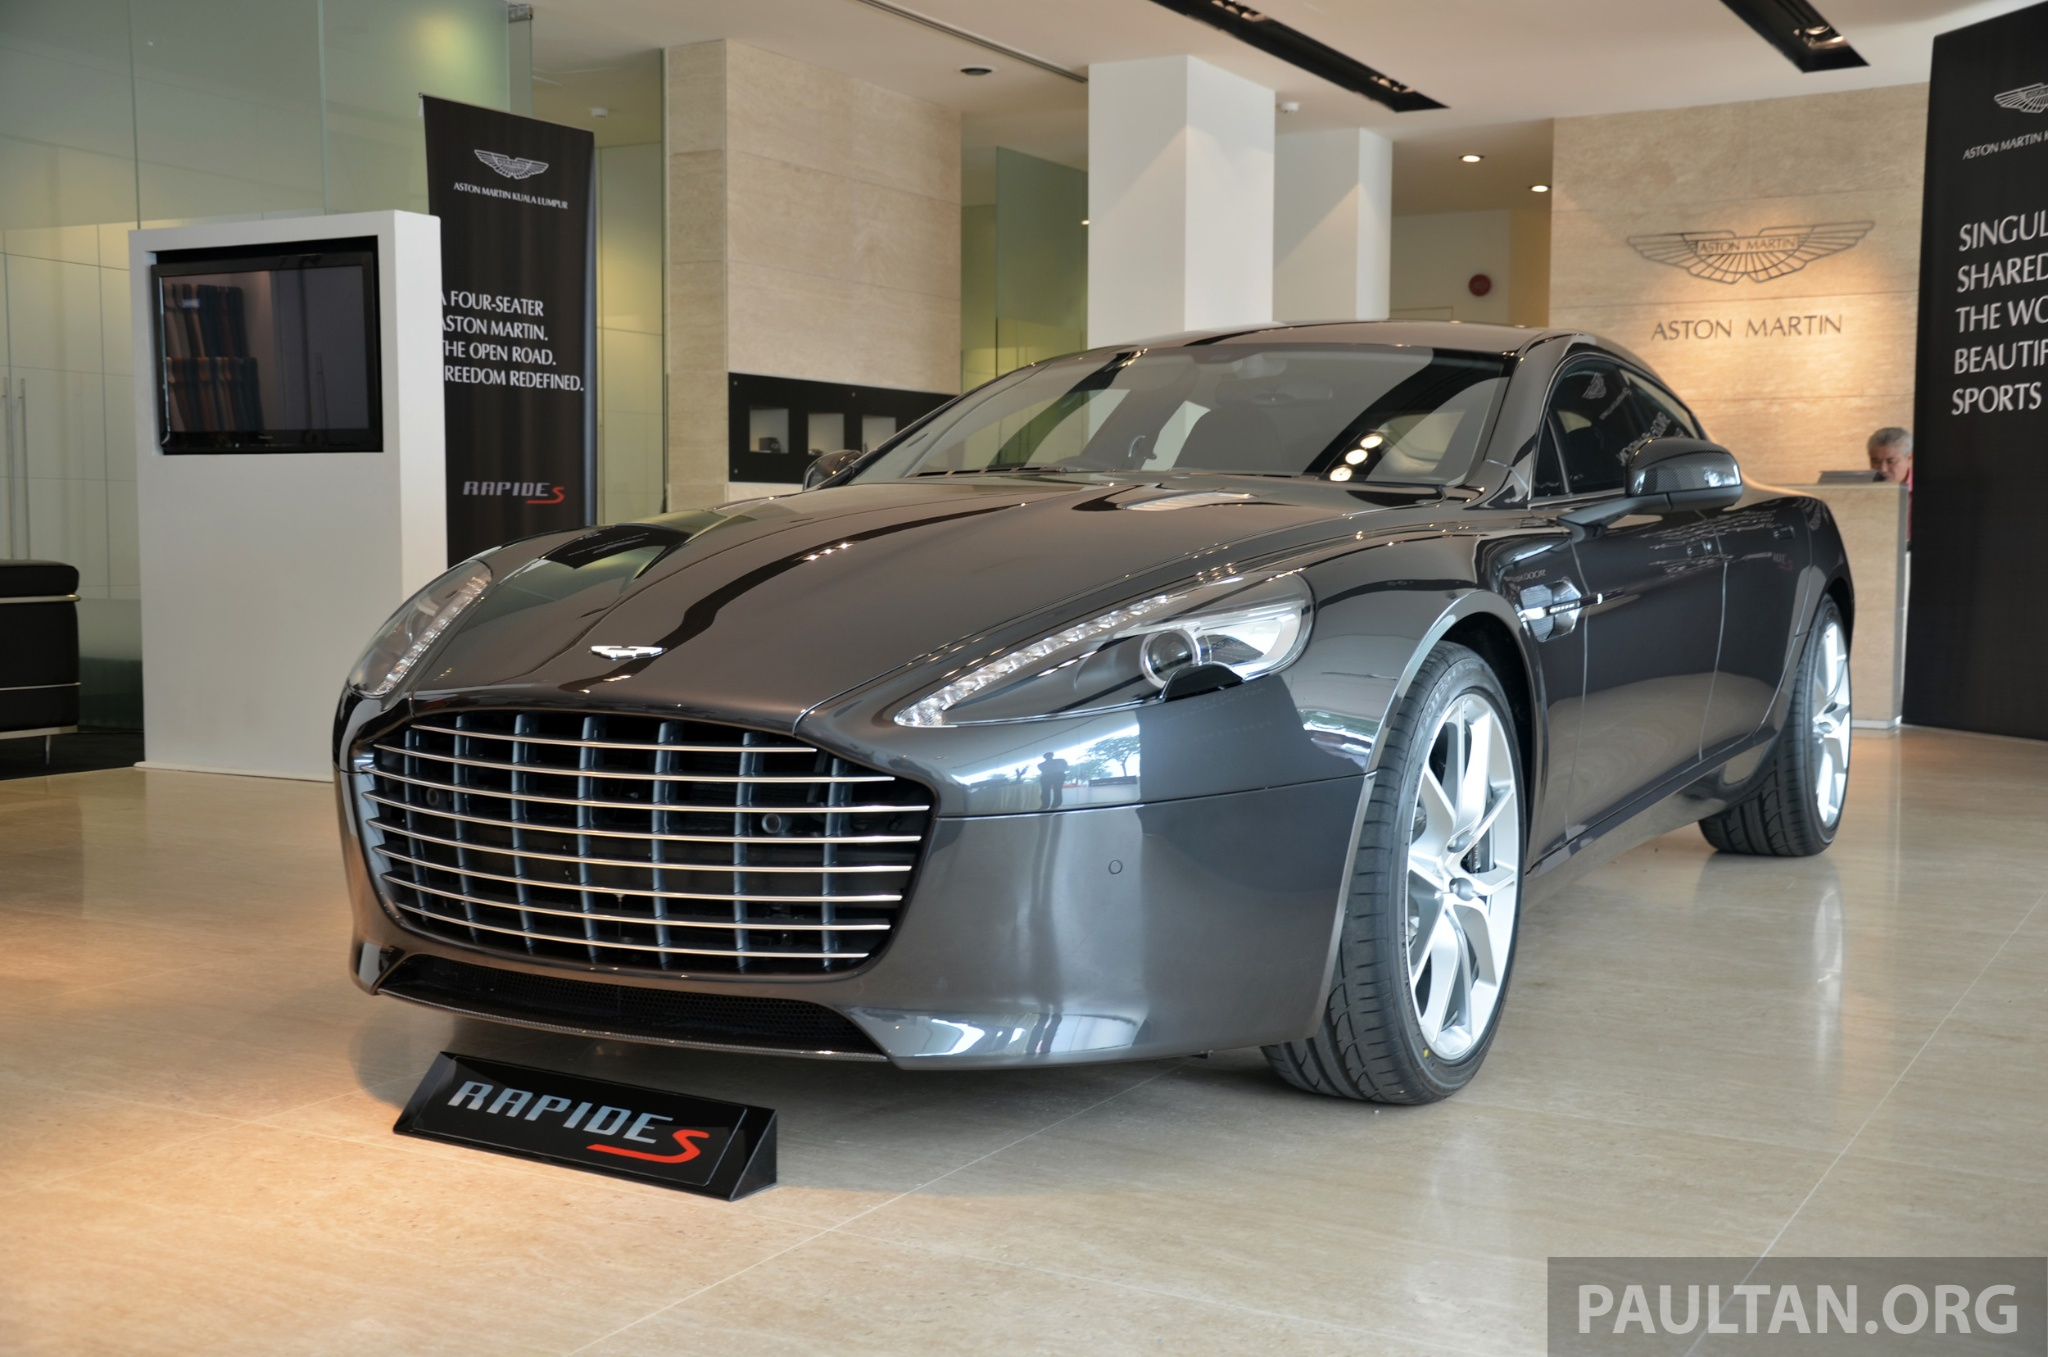 rapide s – Automobile Wallpapers in HD | Iphone,| Android,| Desktop 20 Wallpaper